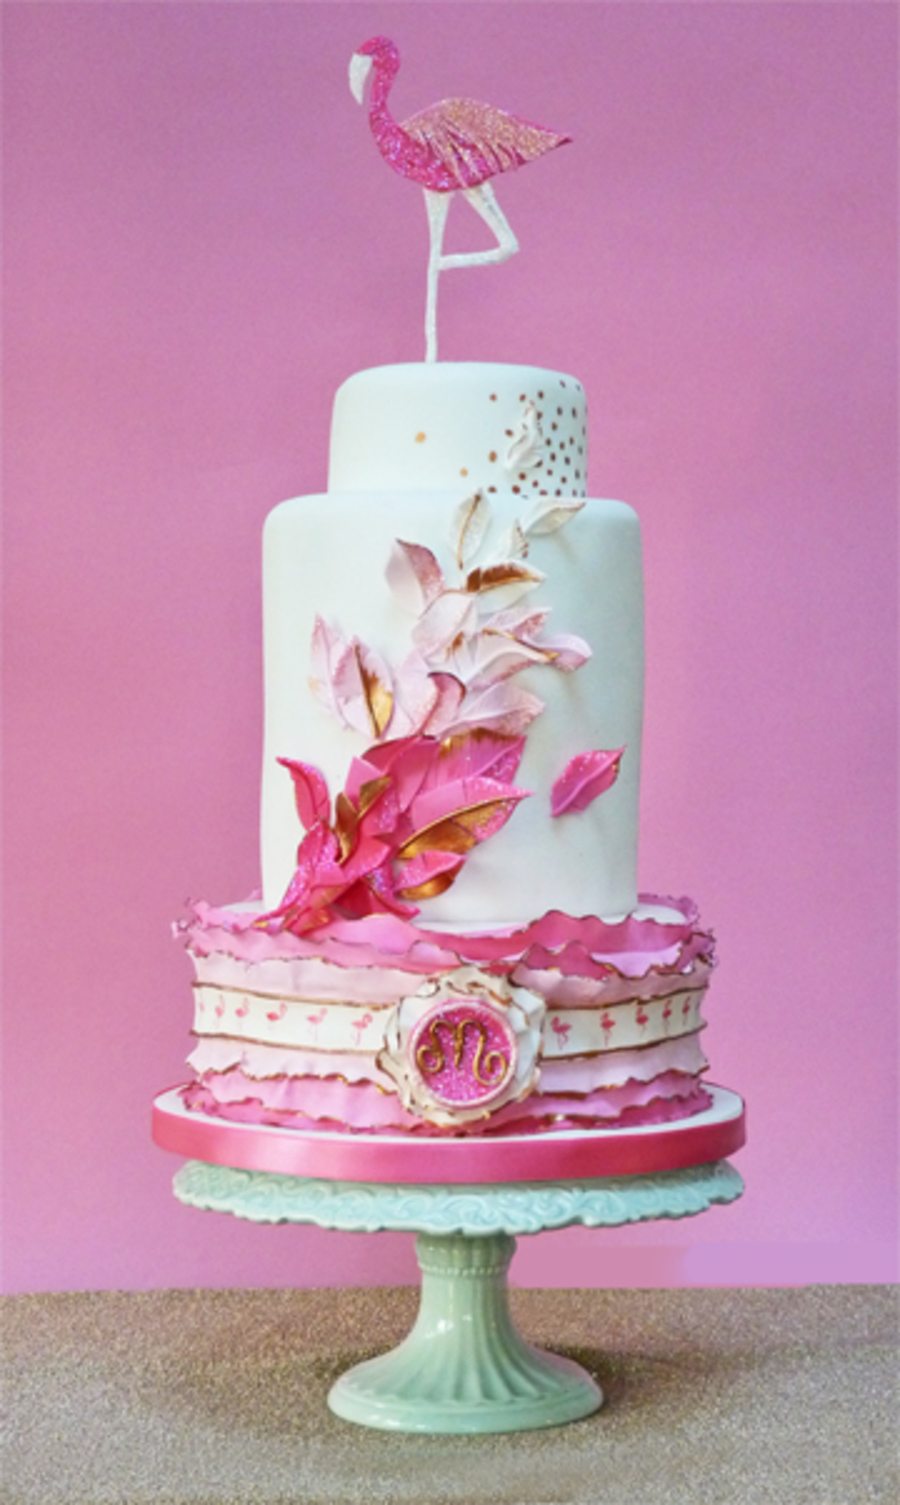 A 40th Birthday Cake With A Flamingo Theme Cakecentral Com